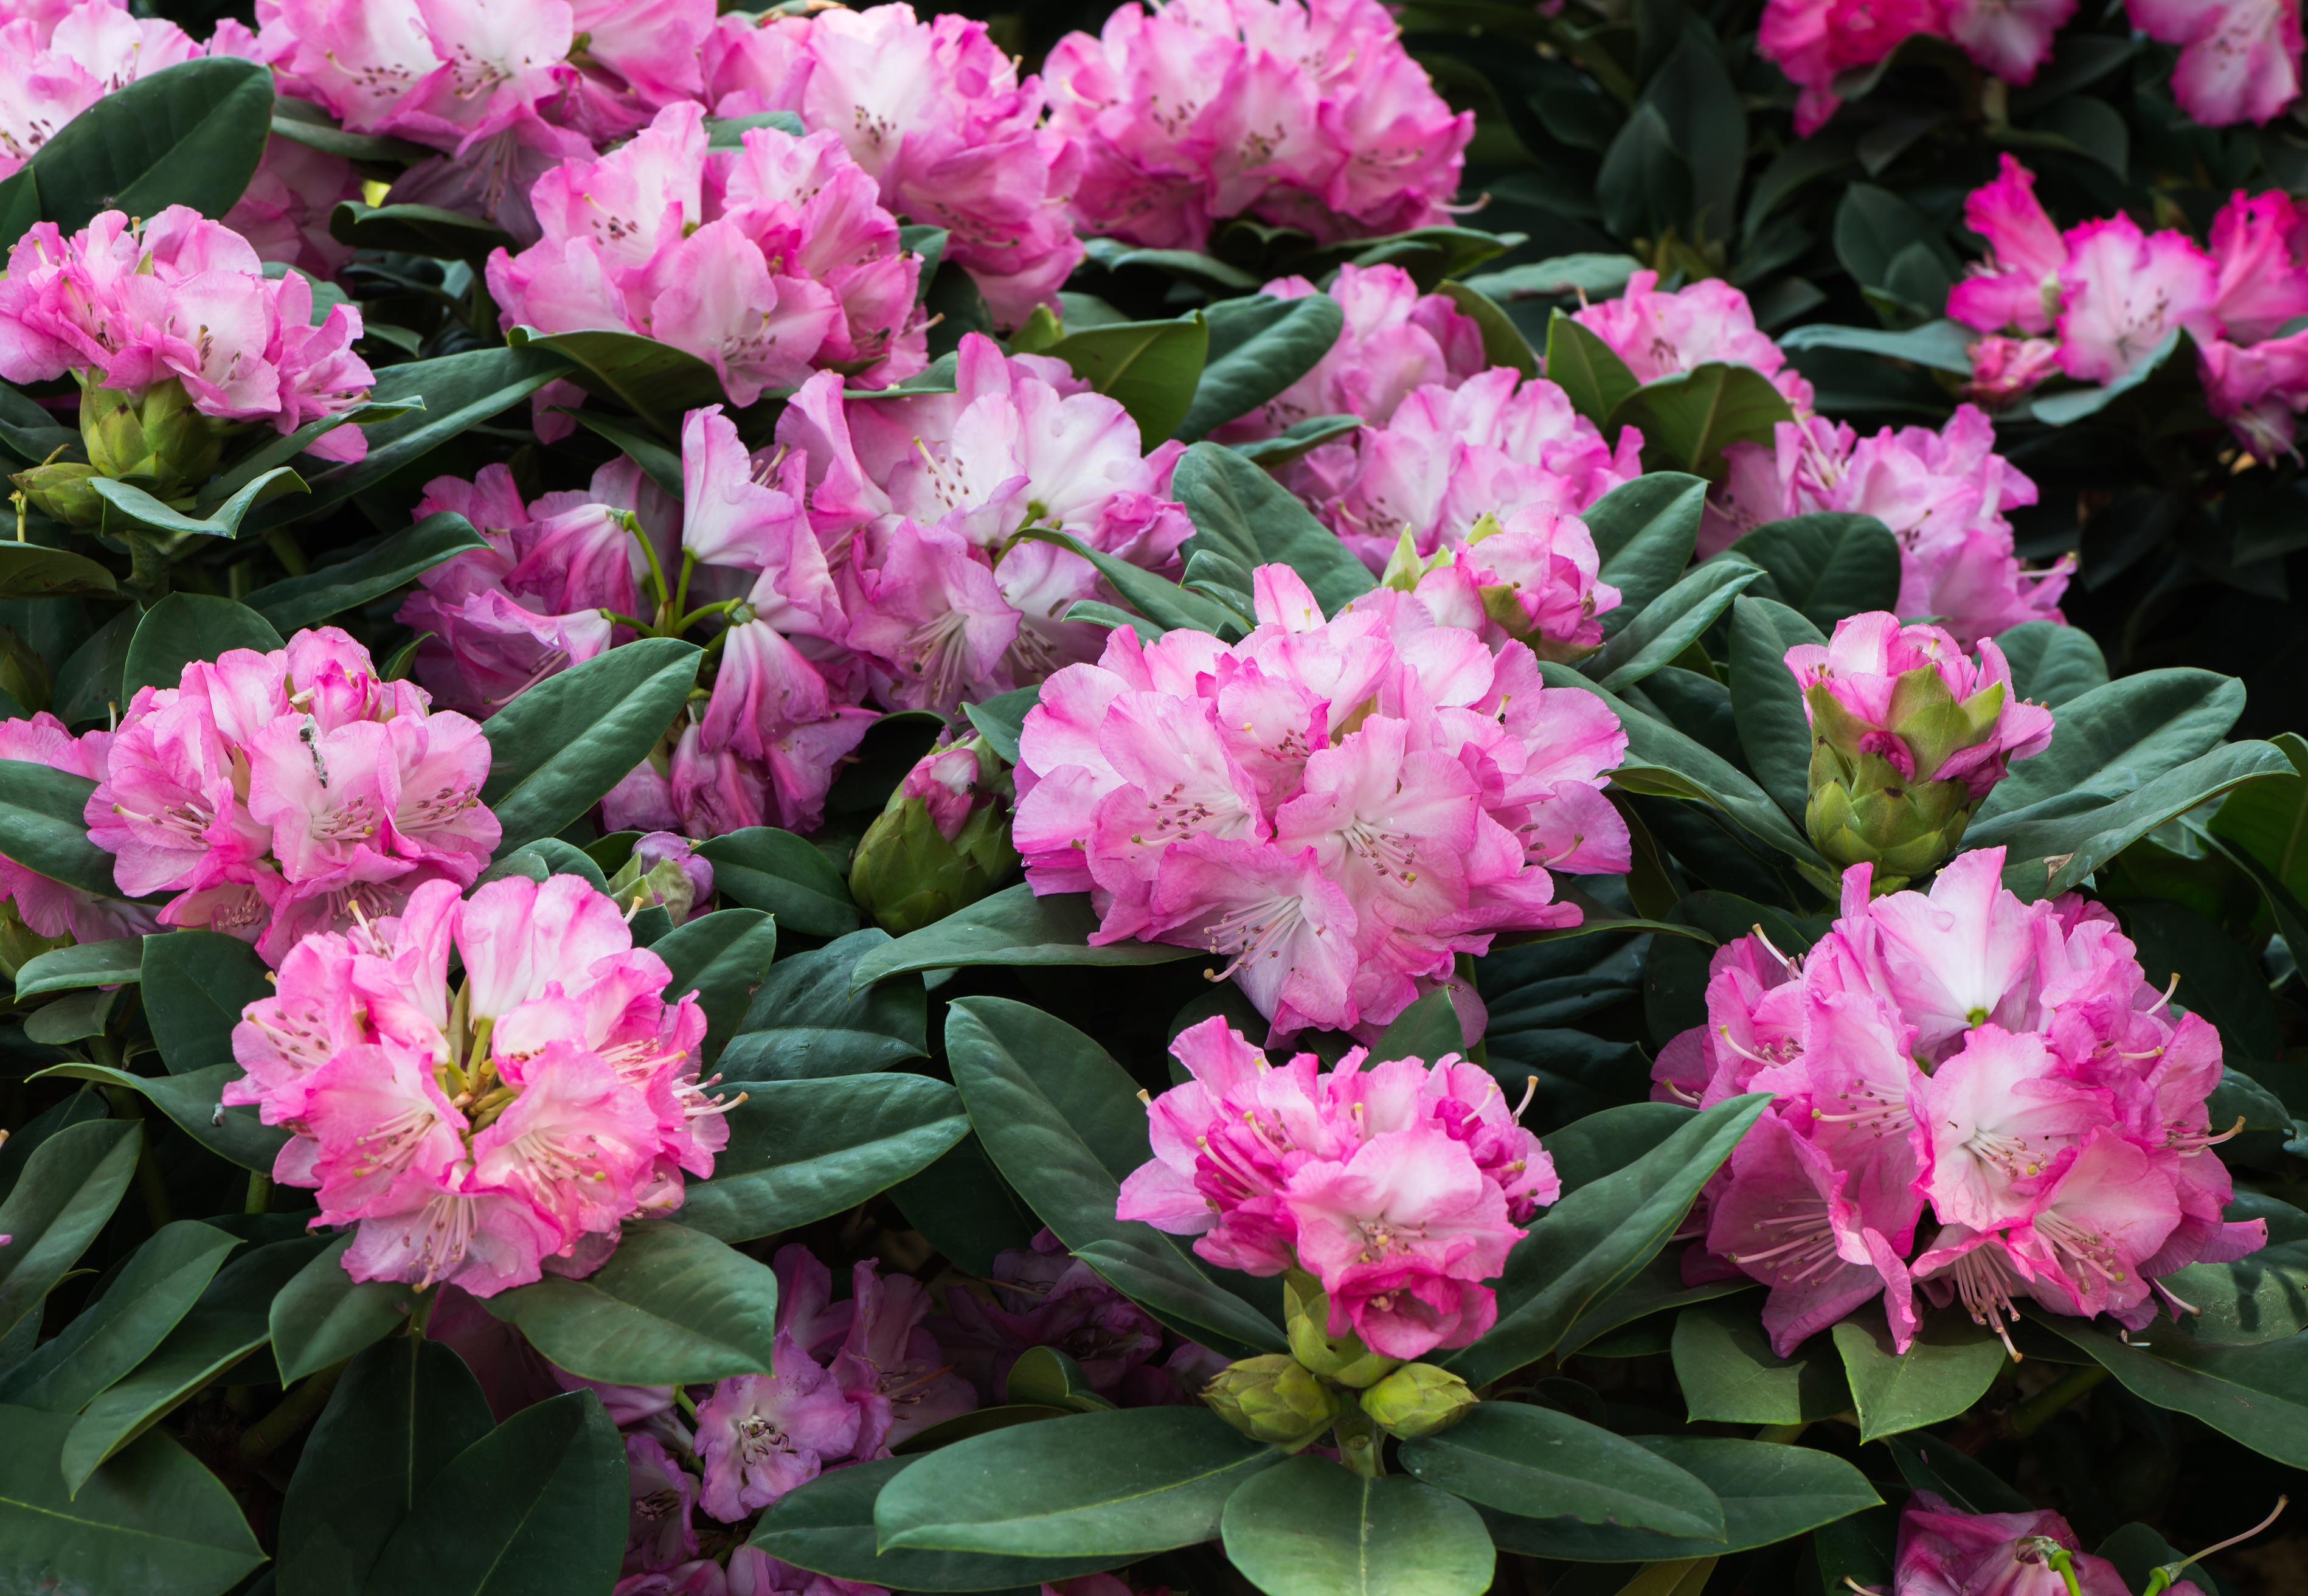 Rhododendron (Thinkstock/PA)